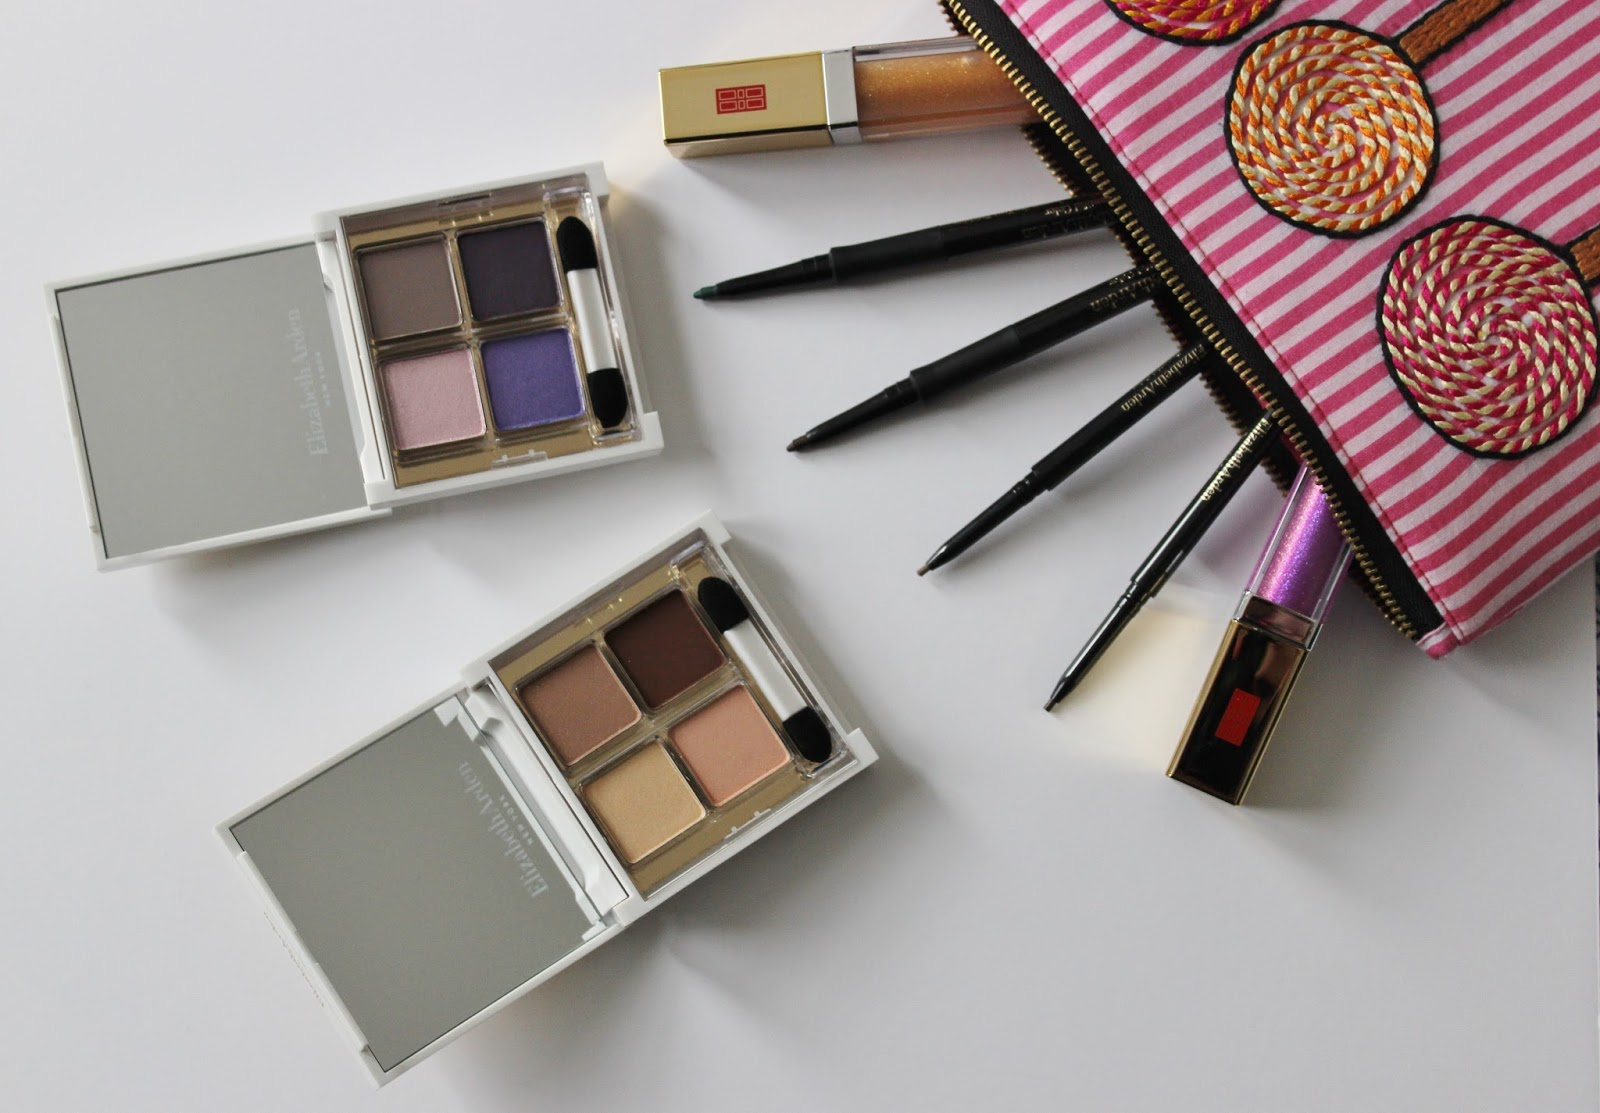 Elizabeth Arden untold aw14 makeup launches